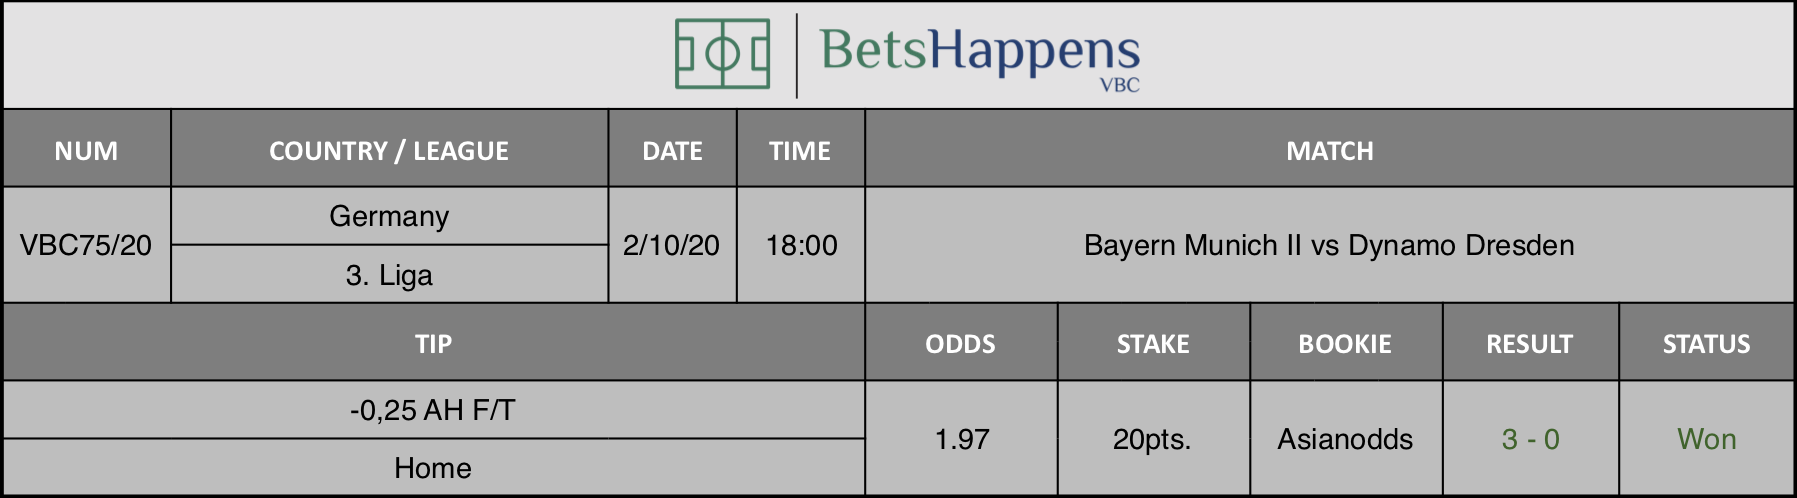 Results of our advice for the Bayern Munich II vs Dynamo Dresden match in which -0.25 AH F / T Home is recommended.